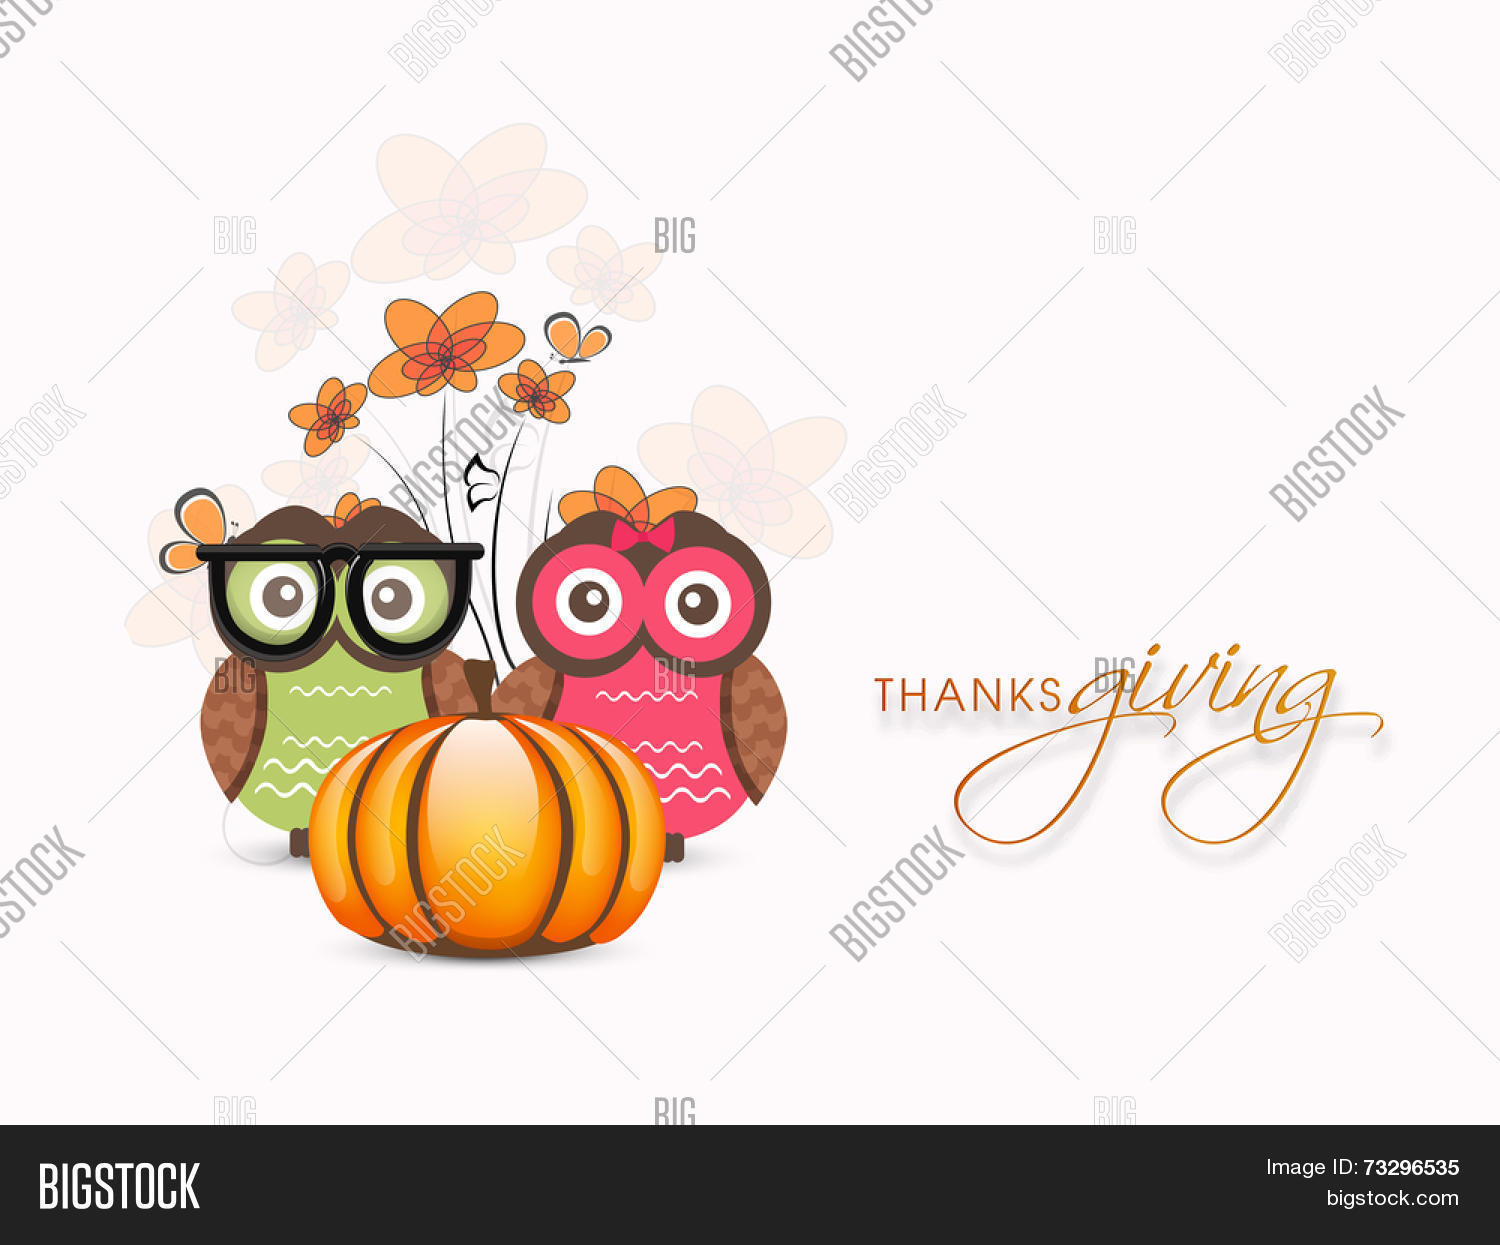 Happy Thanksgiving Day Celebrations With Cute Owl Couple And Pumpkin On Maple Leaves Decorated Background